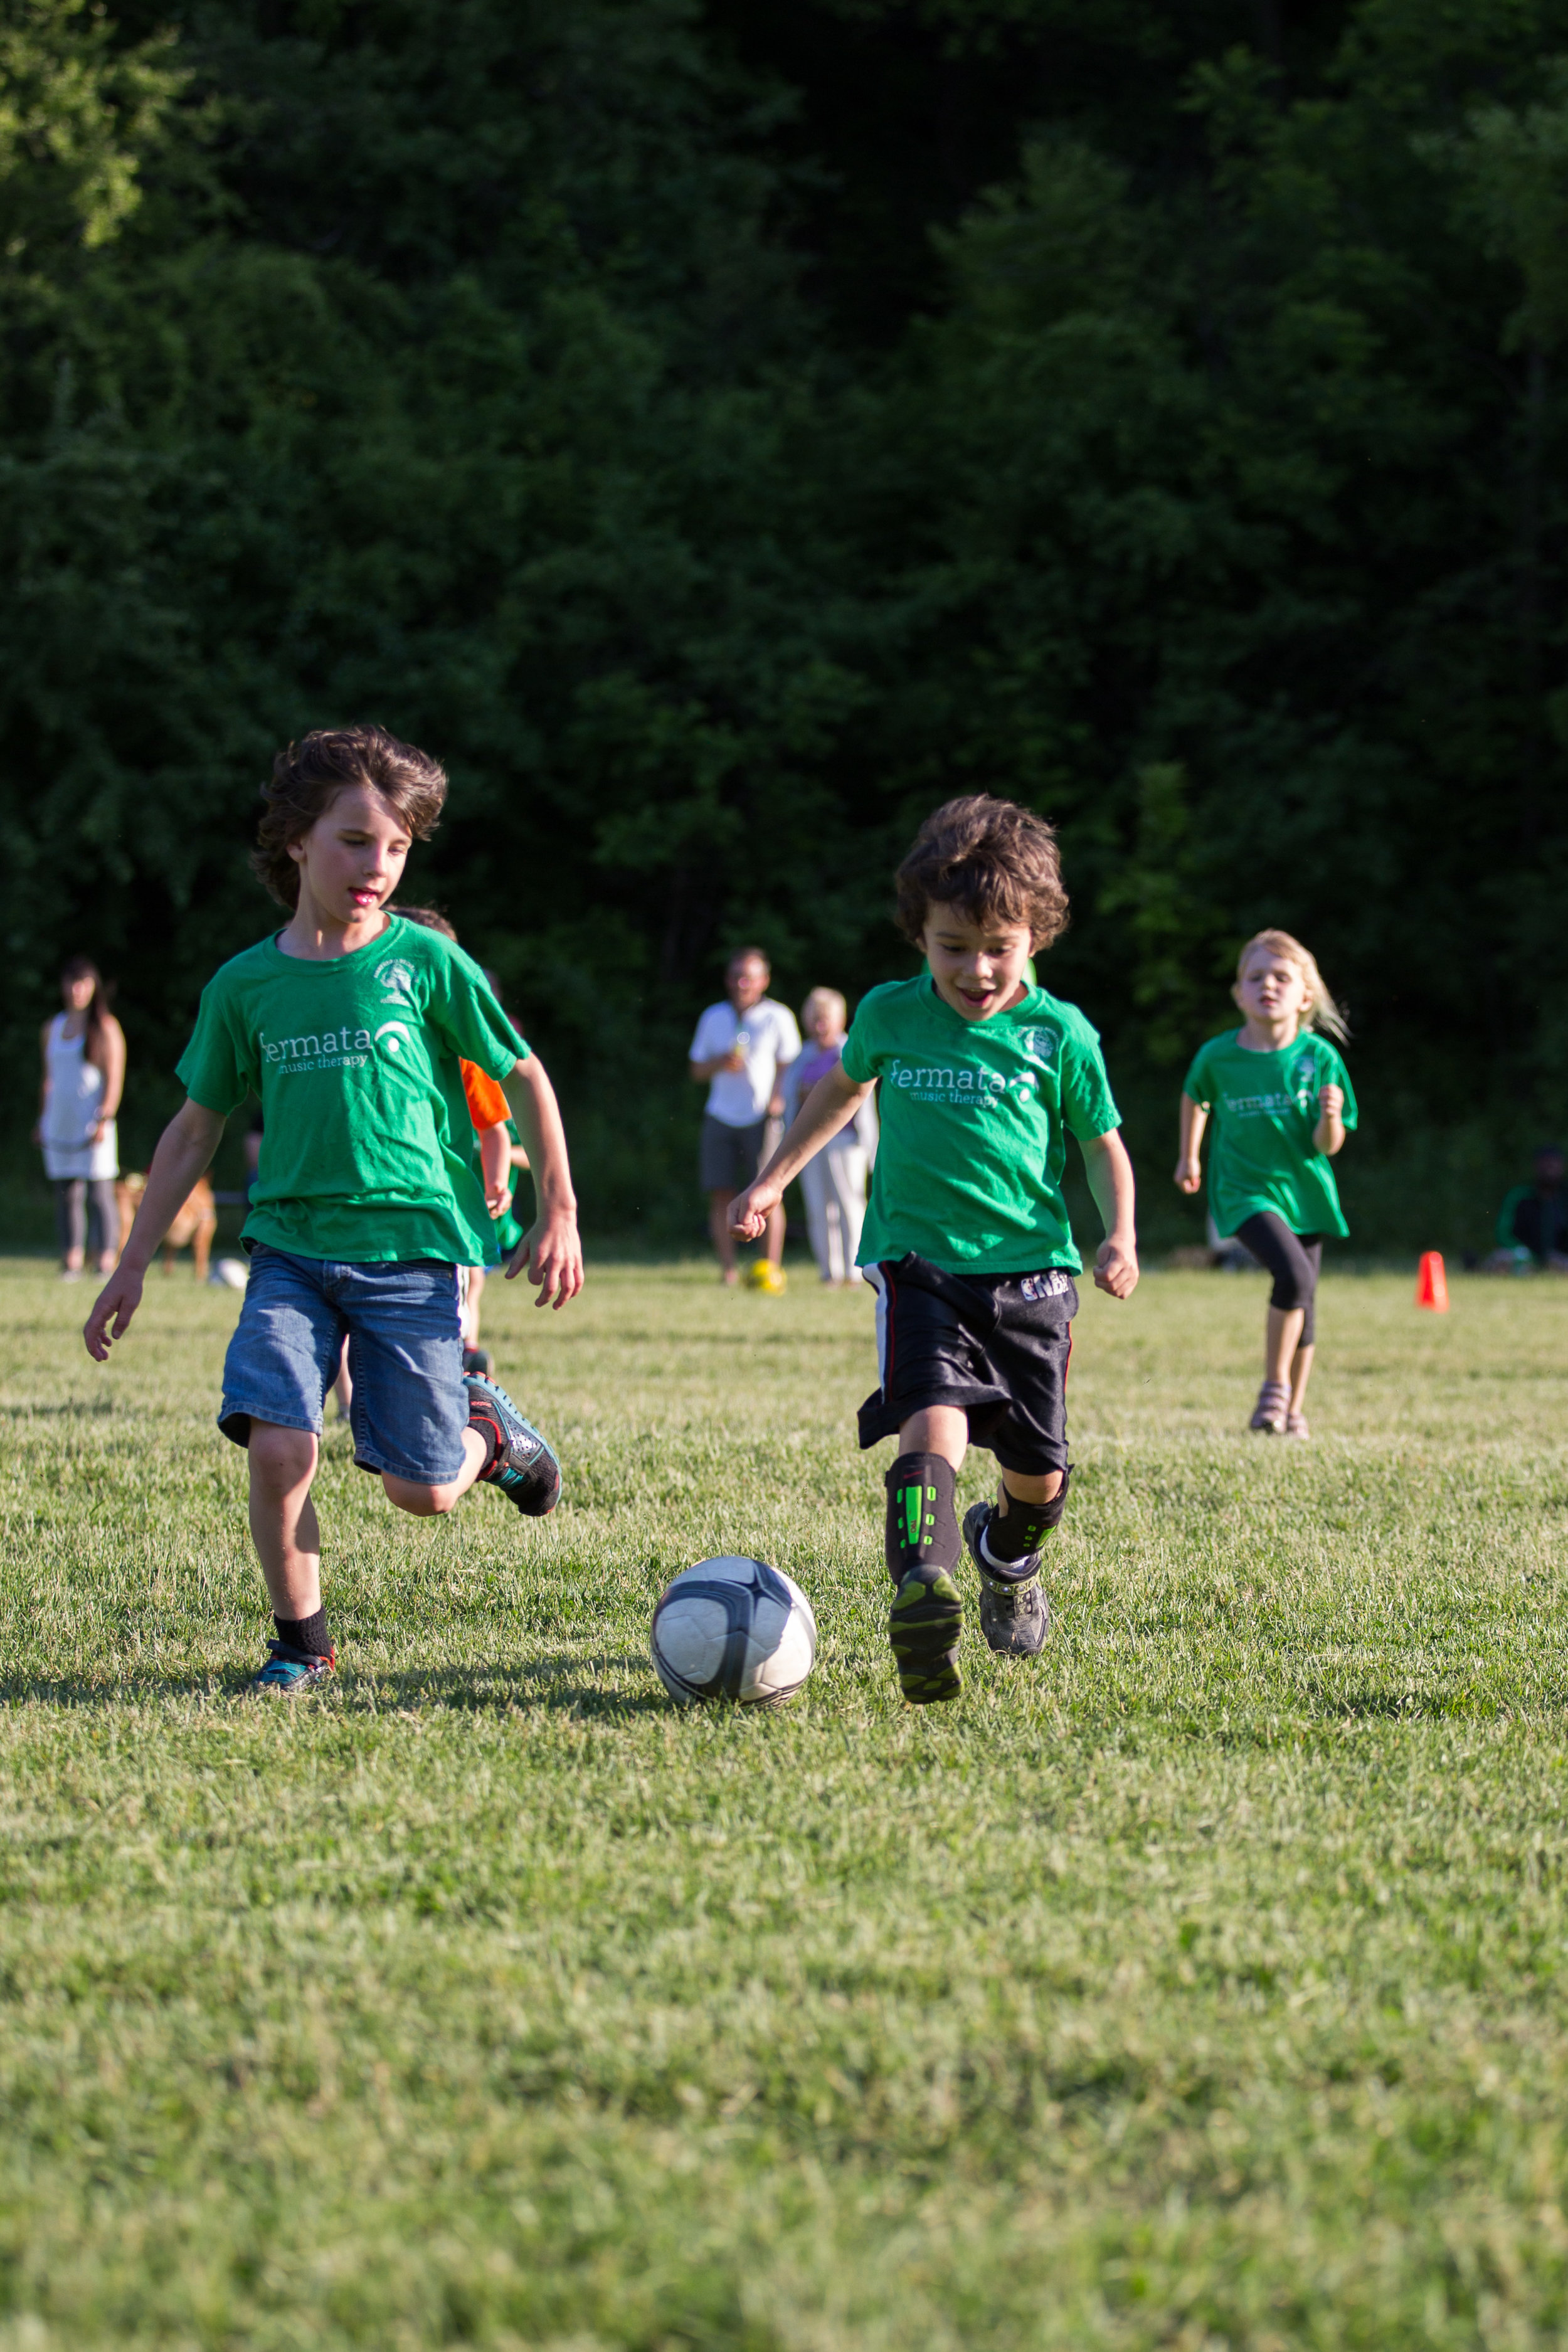 Tuesday April 28th to Thursday June 18th. - Kirkendall Recreation is a non-competitive, co-educational league run by volunteers, for children in Junior Kindergarten to Grade 5. For many children, this league is their introduction to team sports. For families, it's an opportunity to come together in the spring and celebrate the coming of summer. Games are played at Highland Gardens (Reservoir) at the top of Mountain Avenue. Our season is short and finishes the last week of school in June.Learn more ➝